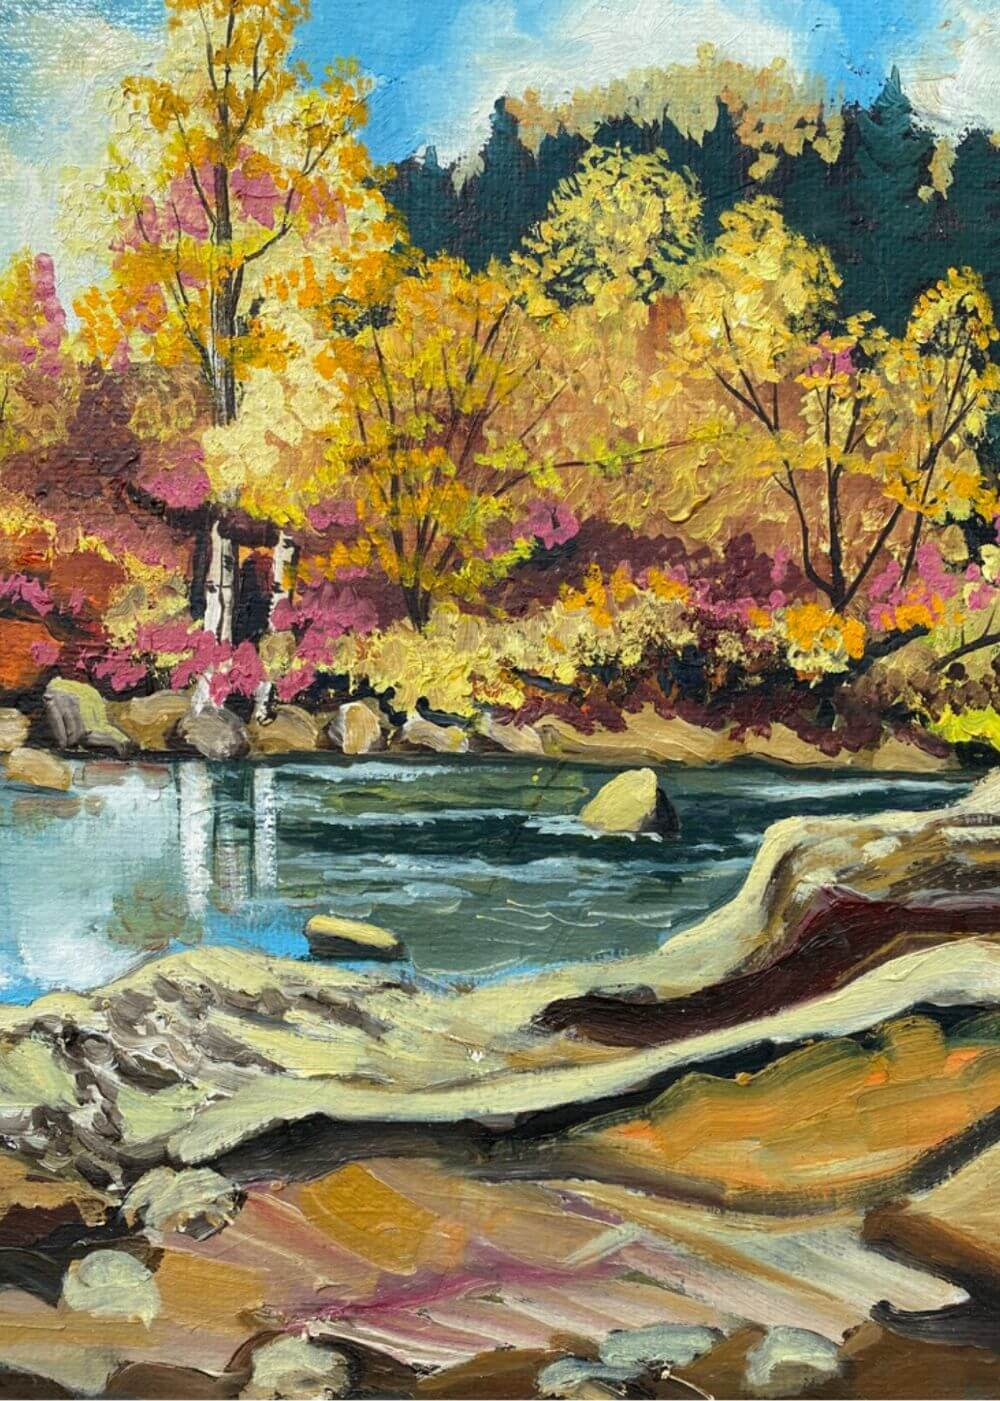 AP Name-Fabulous Fall Forest_Tag-Nature_Collection-Fall